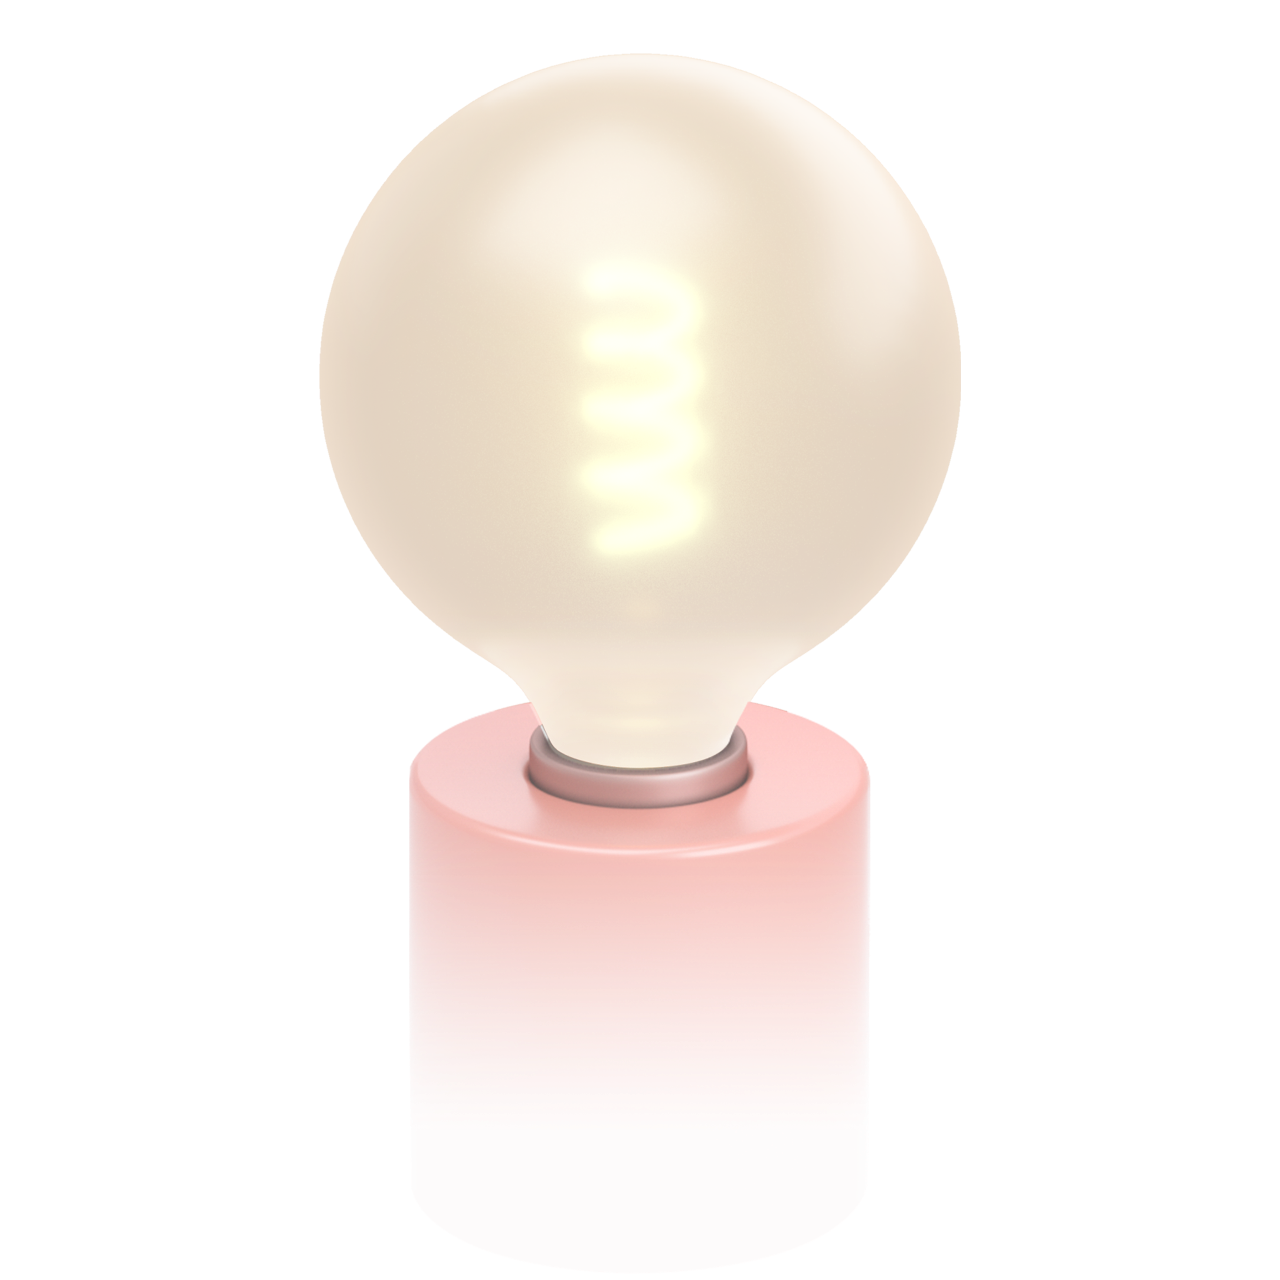 ProtoPie Inspiration Light Bulb